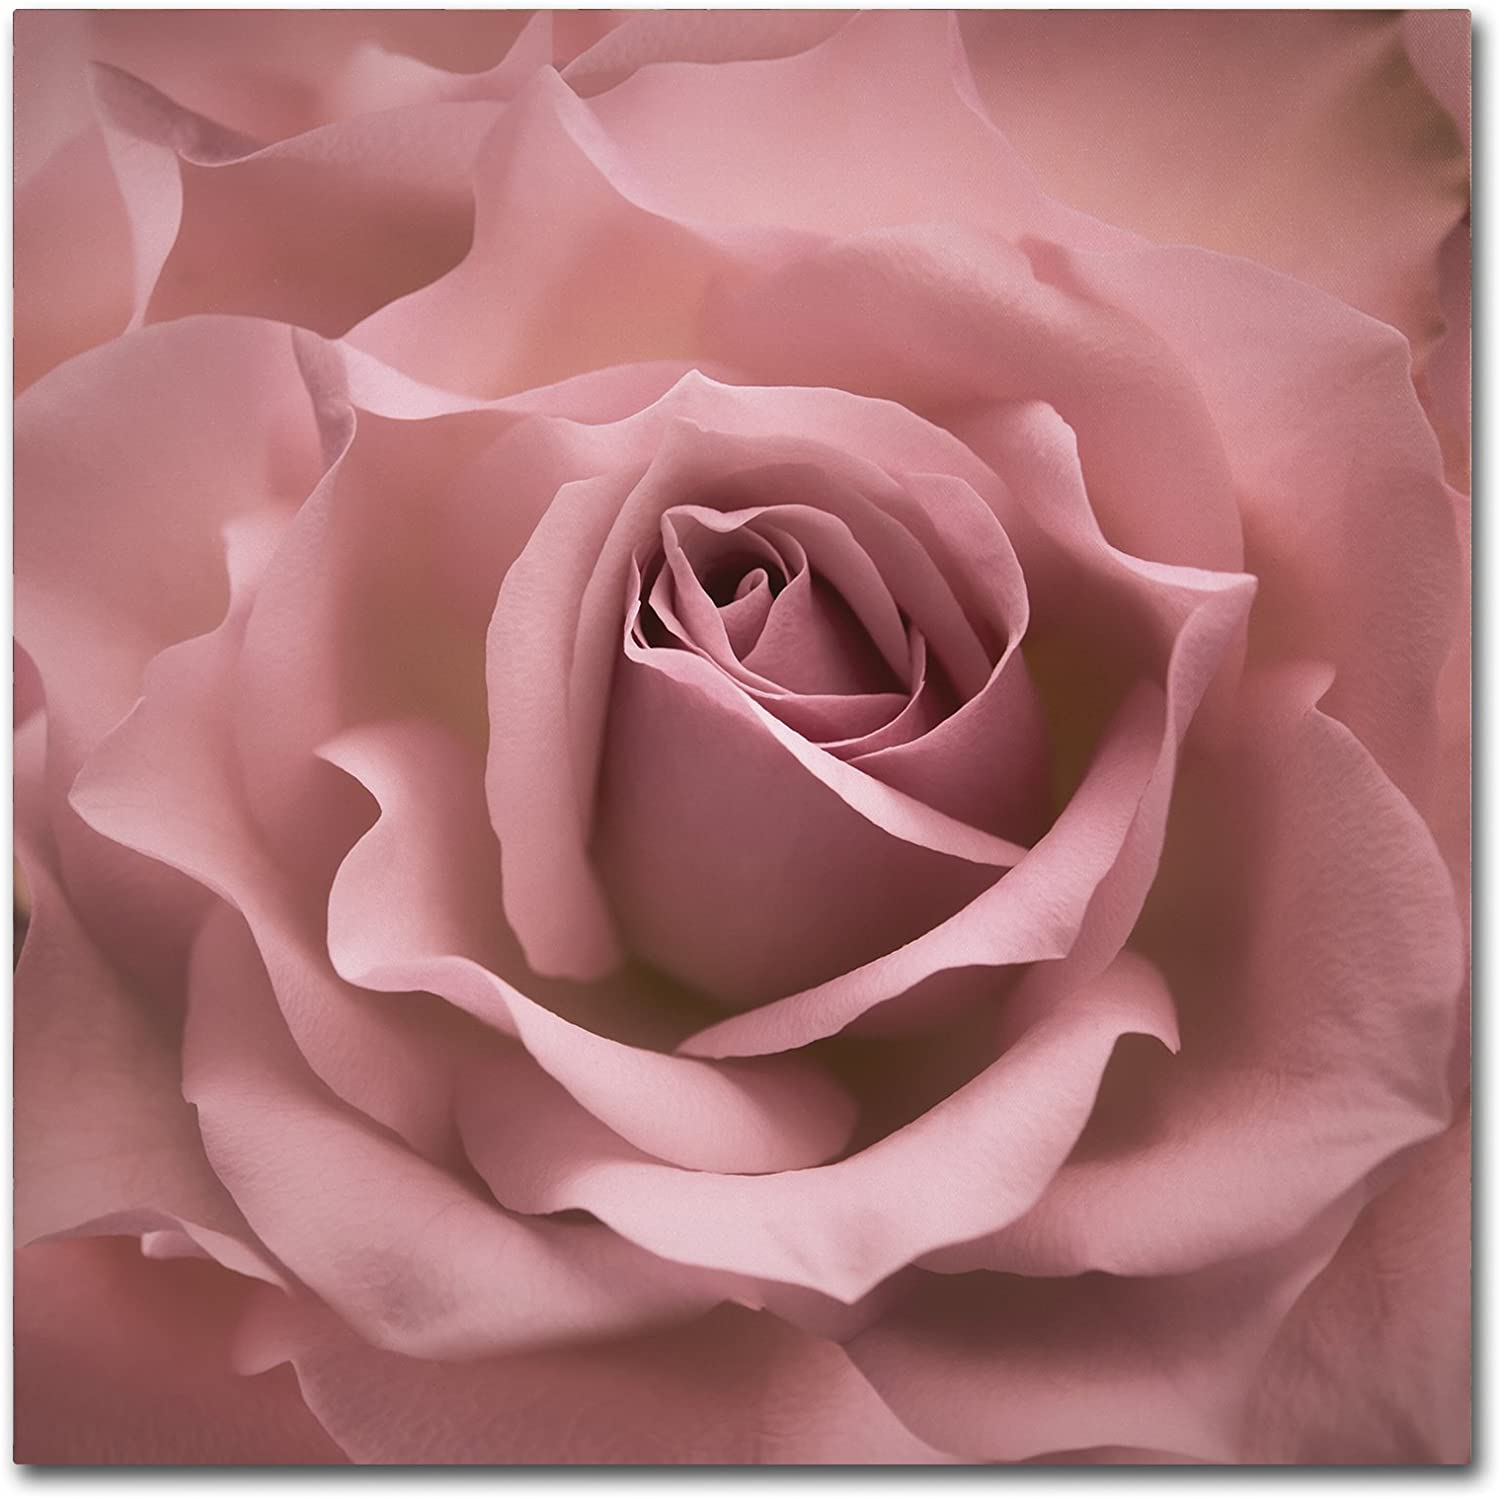 Misty Rose Pink Rose by Cora Niele, 24x24-Inch Canvas Wall Art